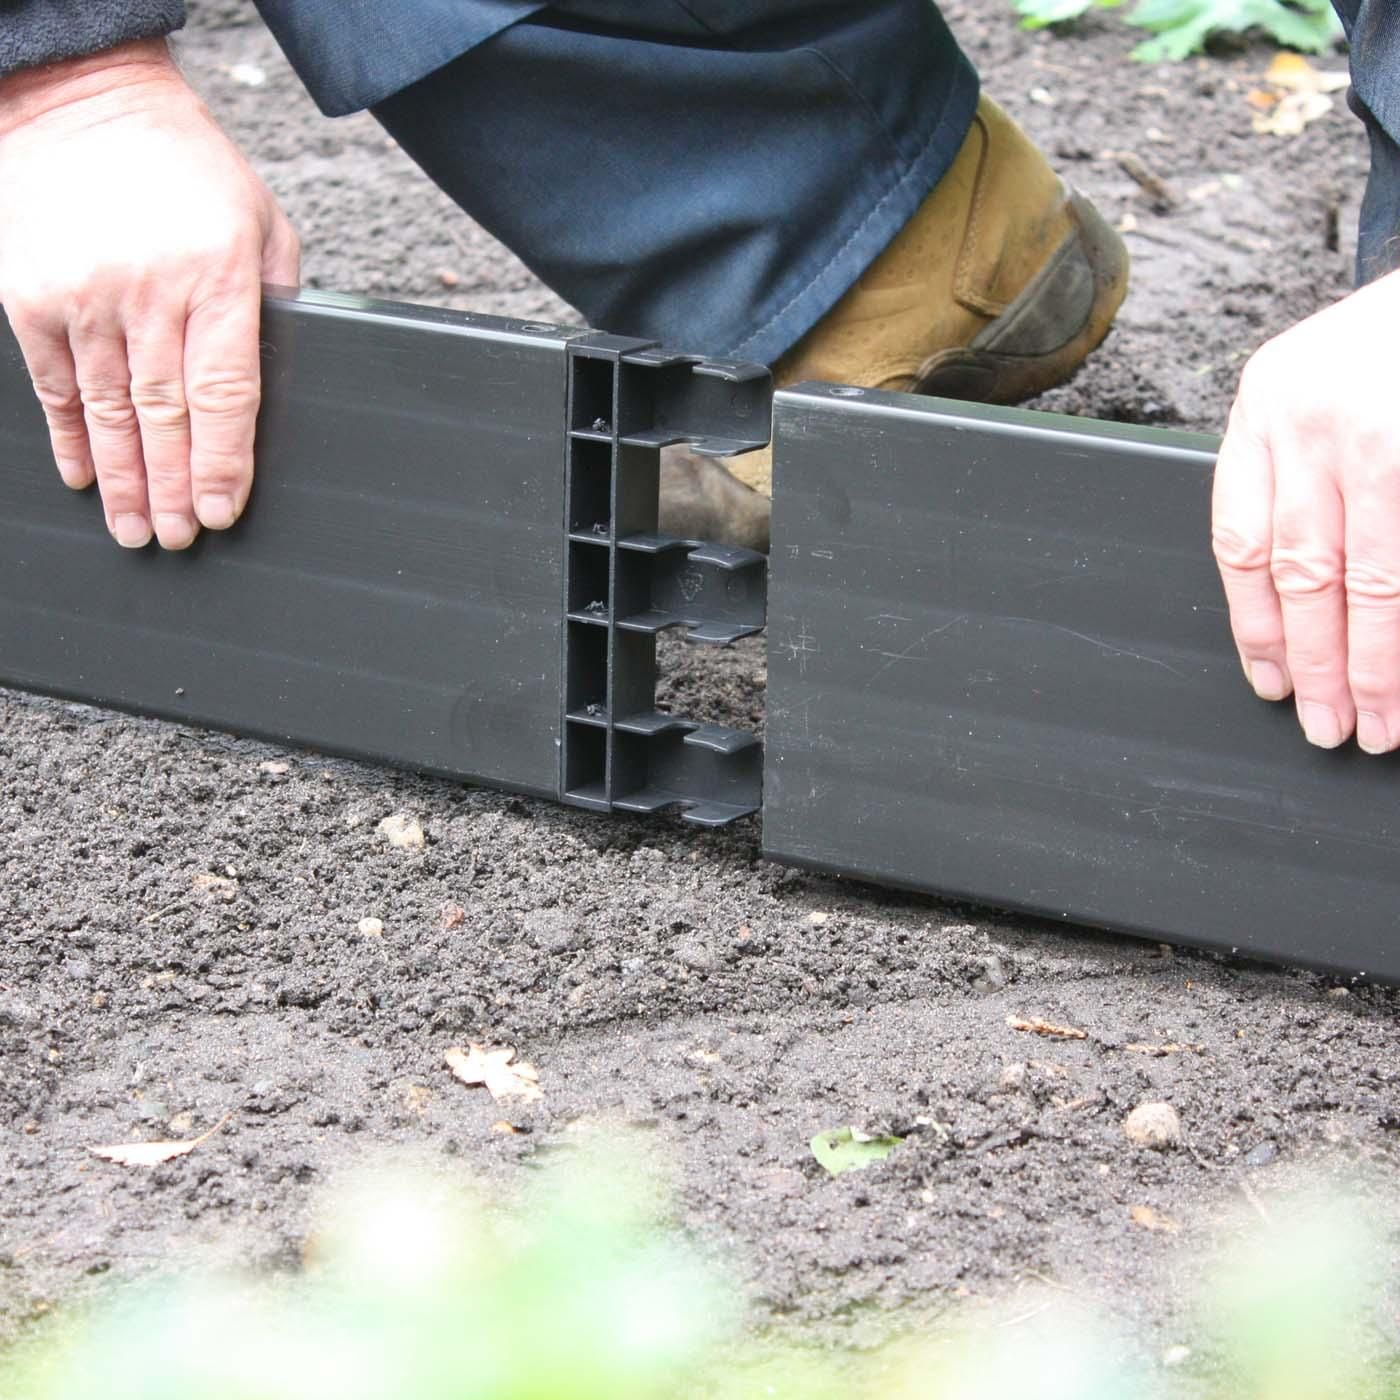 LinkaBord Kits and Components Bord, Raised beds, Bed